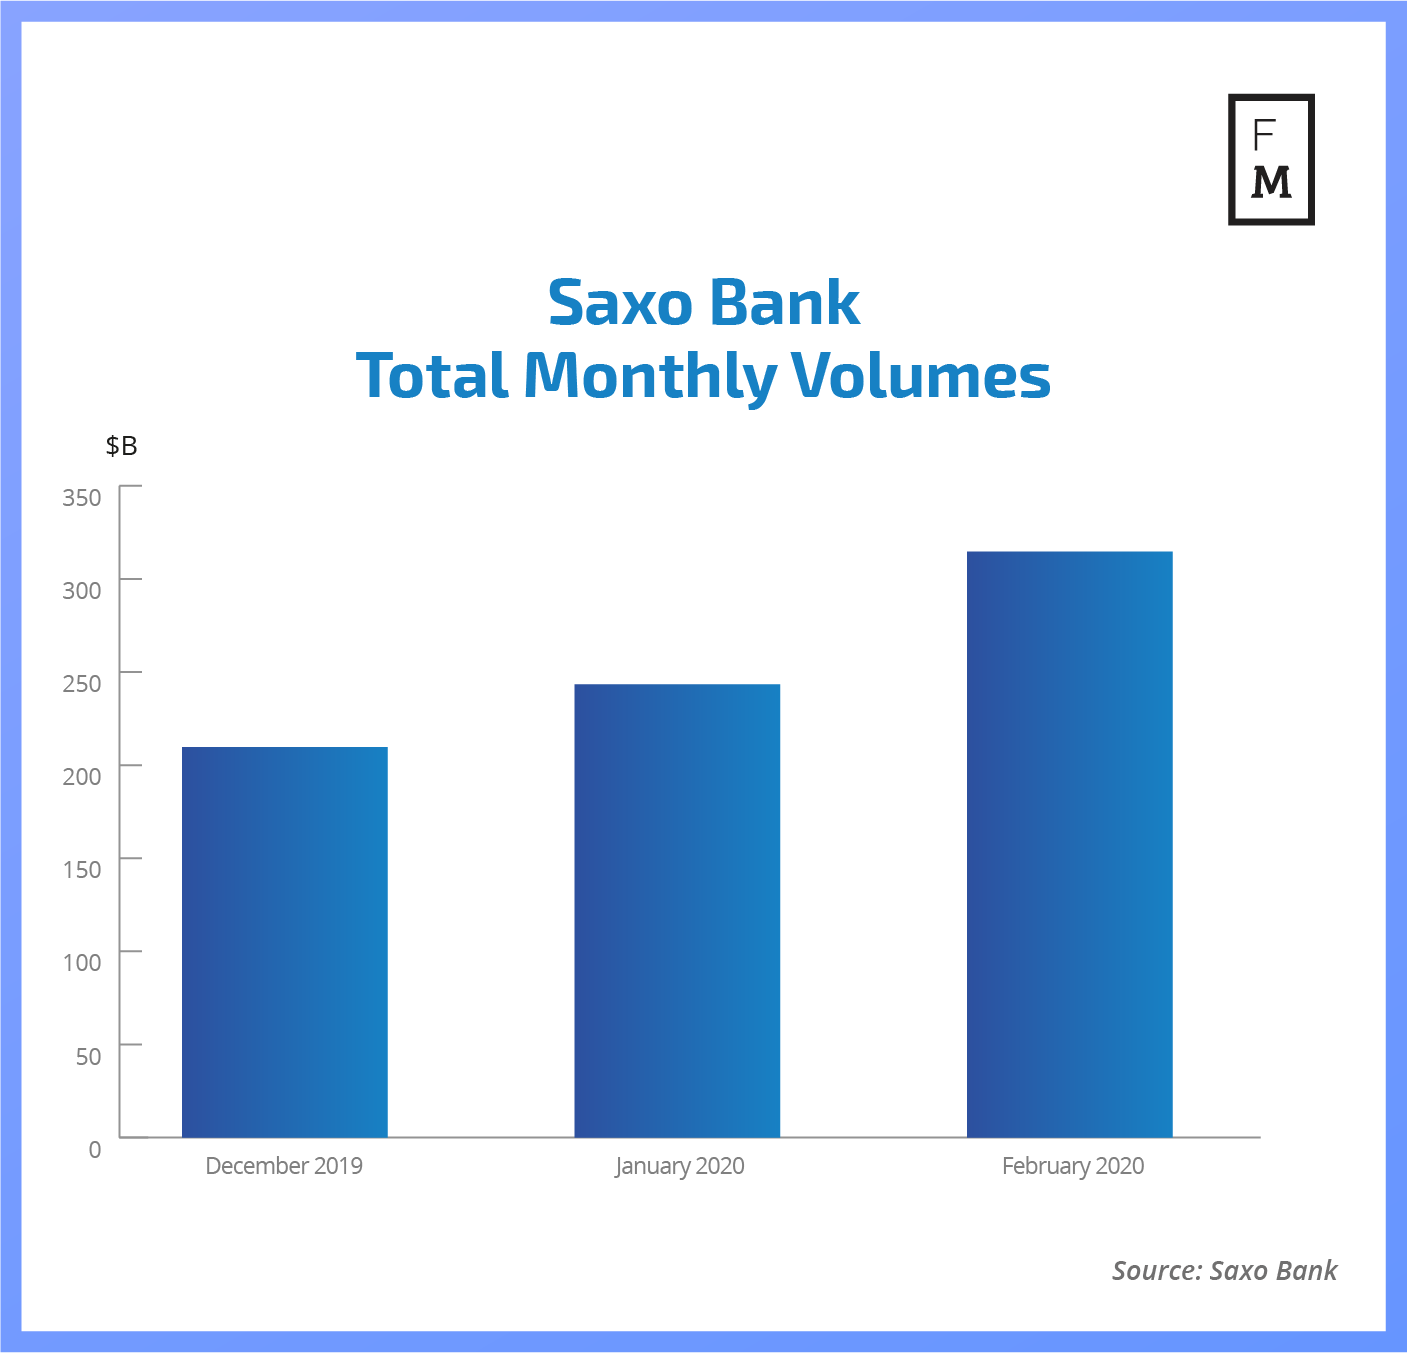 Saxo Bank volumes 2020